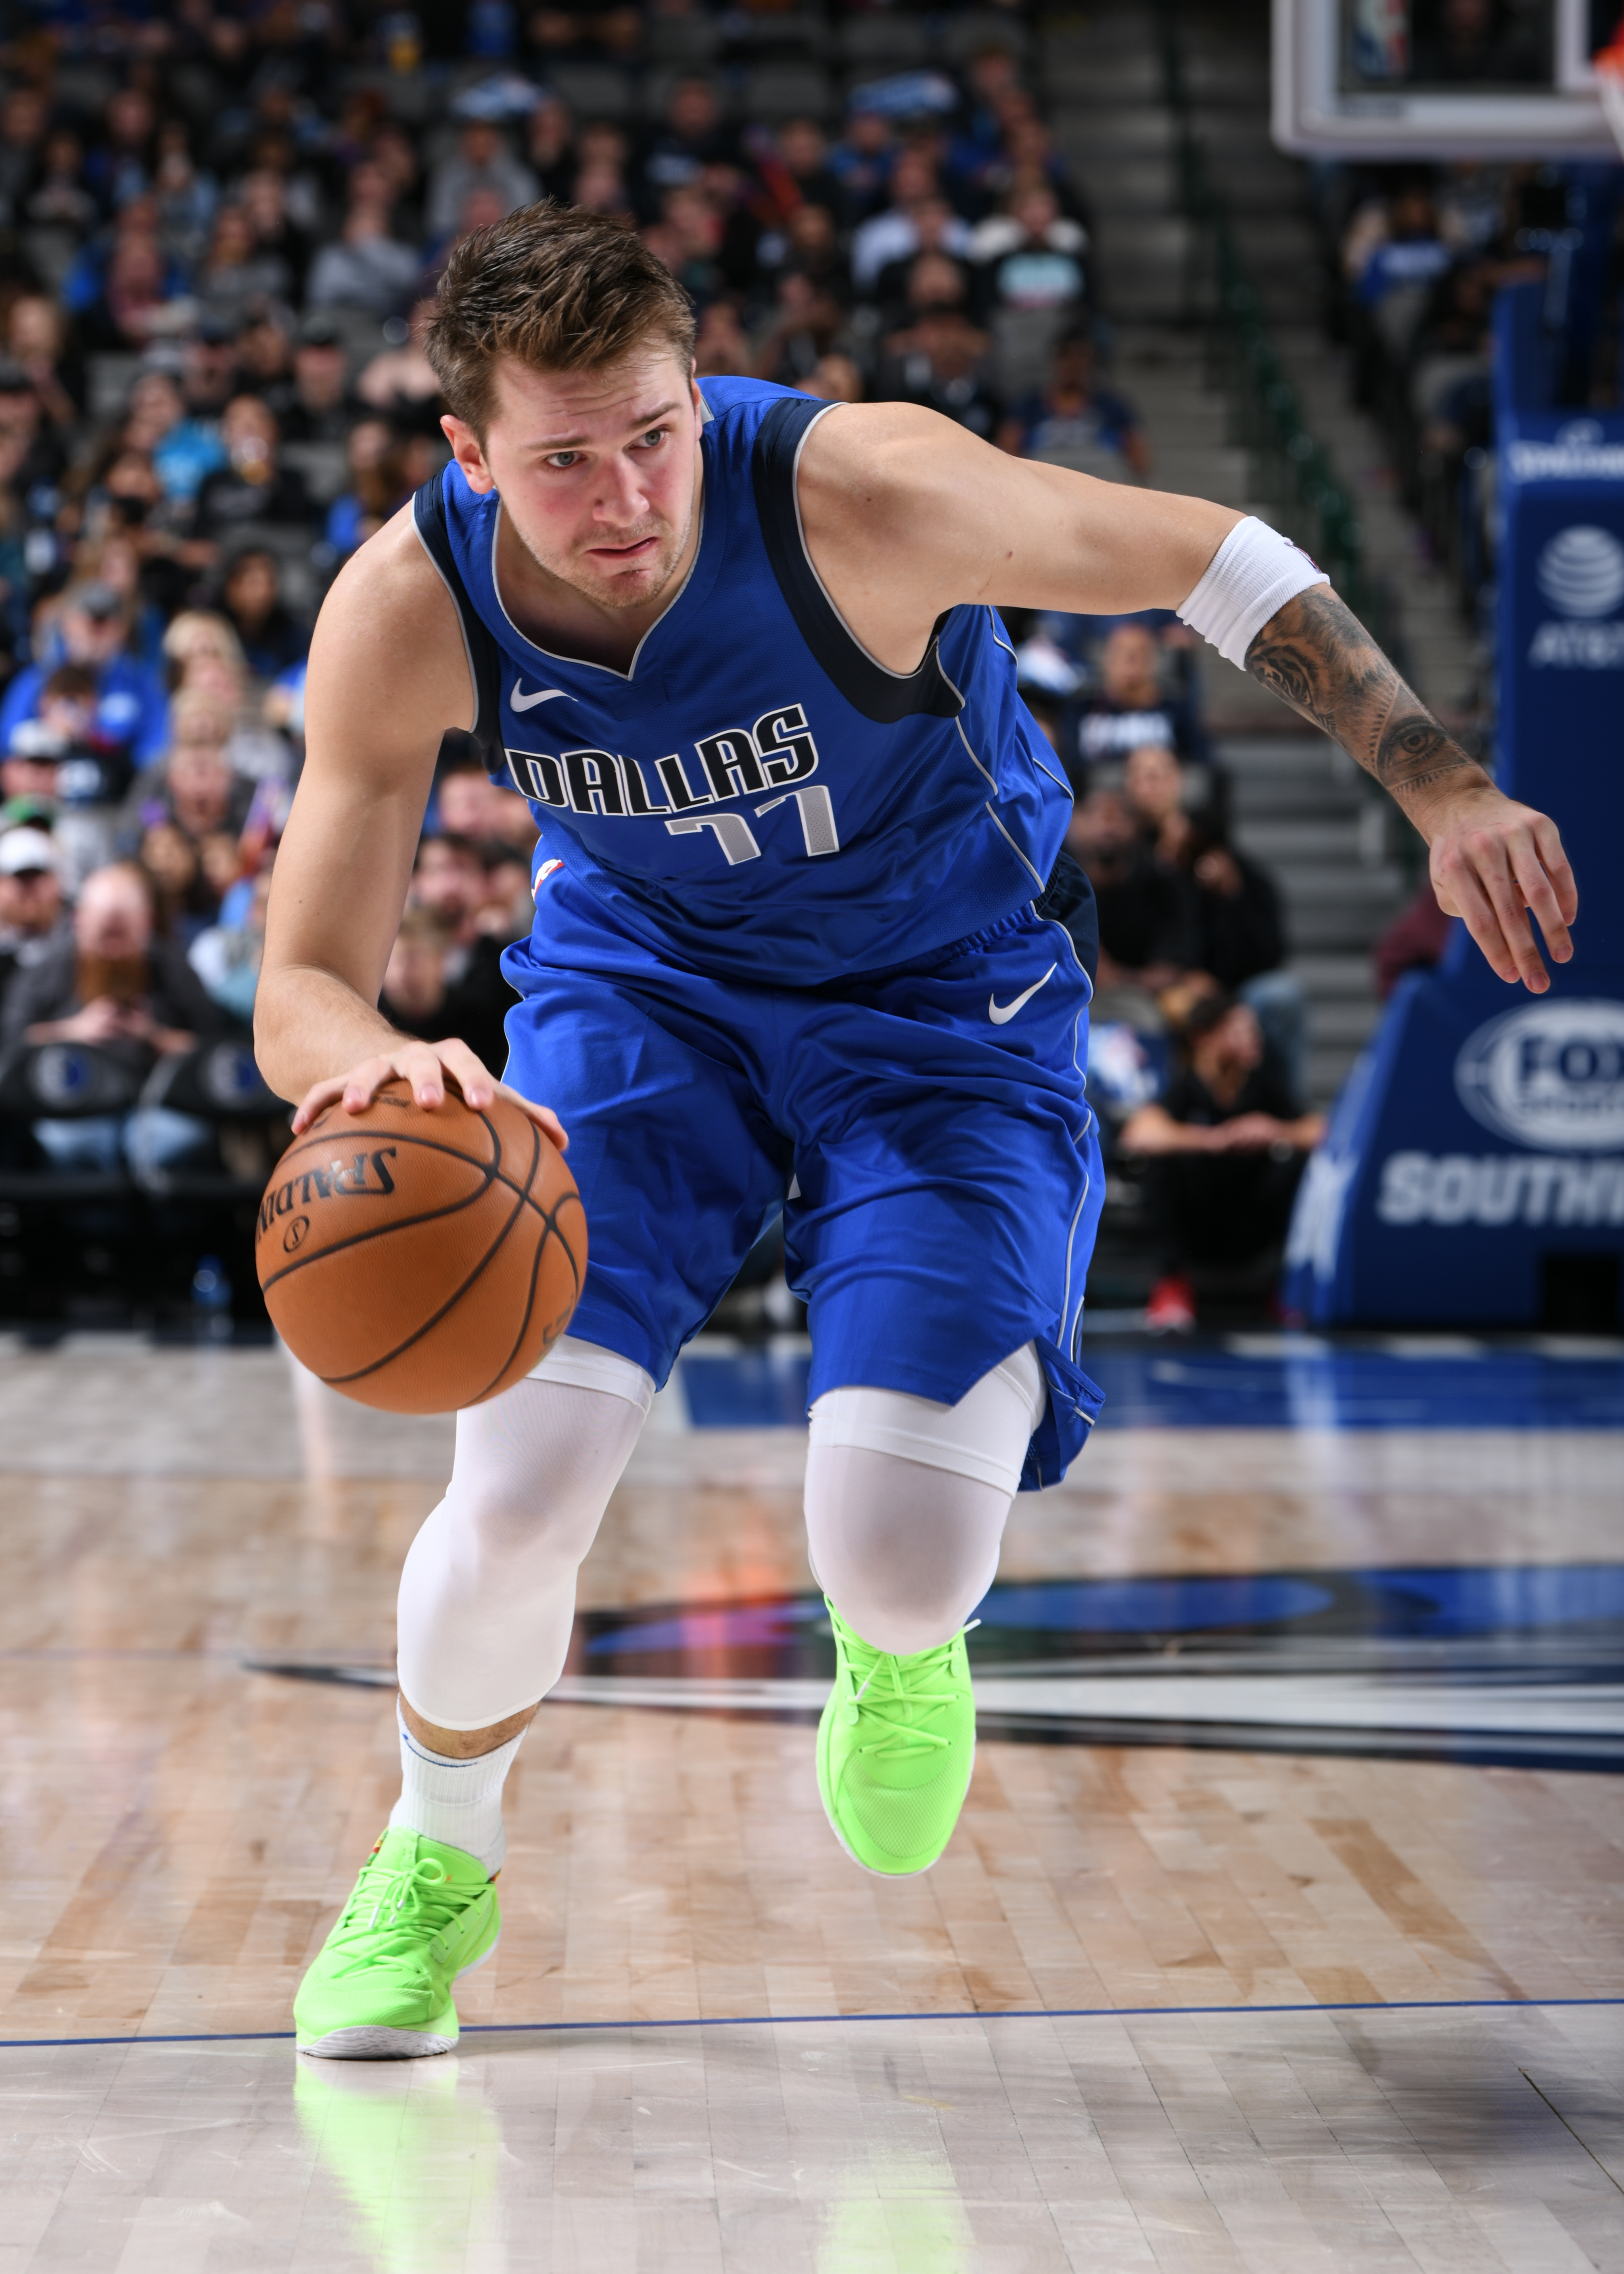 Did you know that 2 teams passed on Luka Doncic in the NBA Draft?